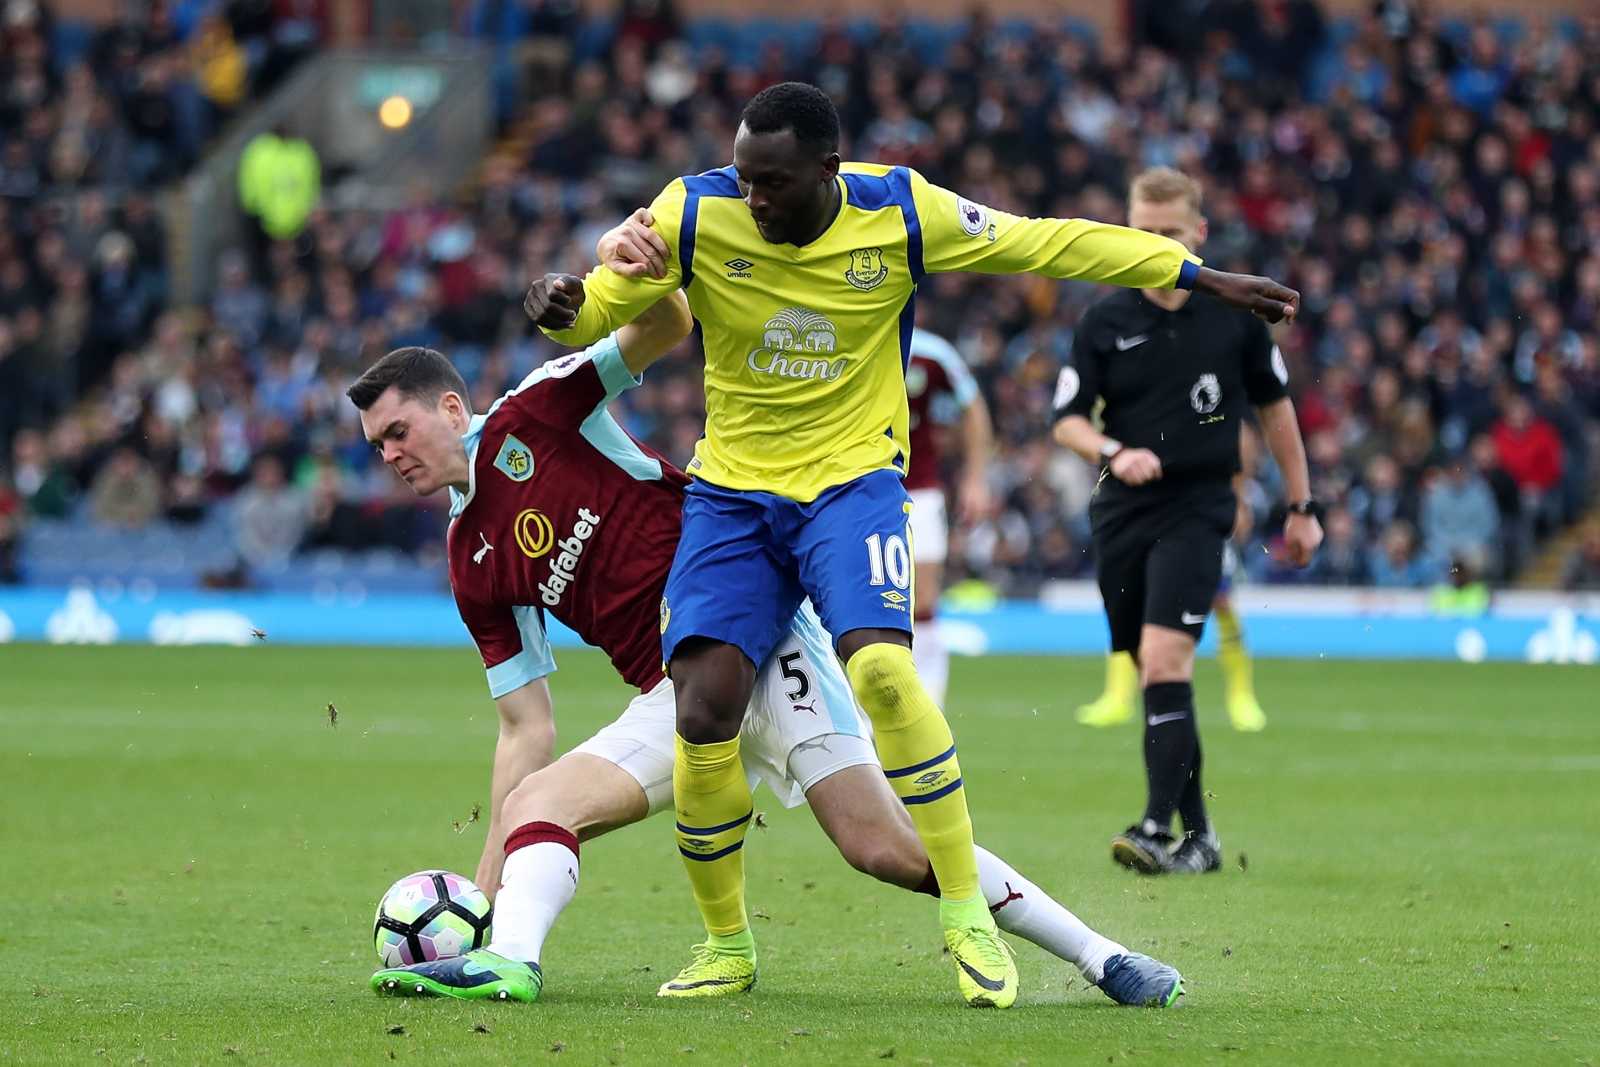 Everton target Michael Keane not due back for Burnley training?